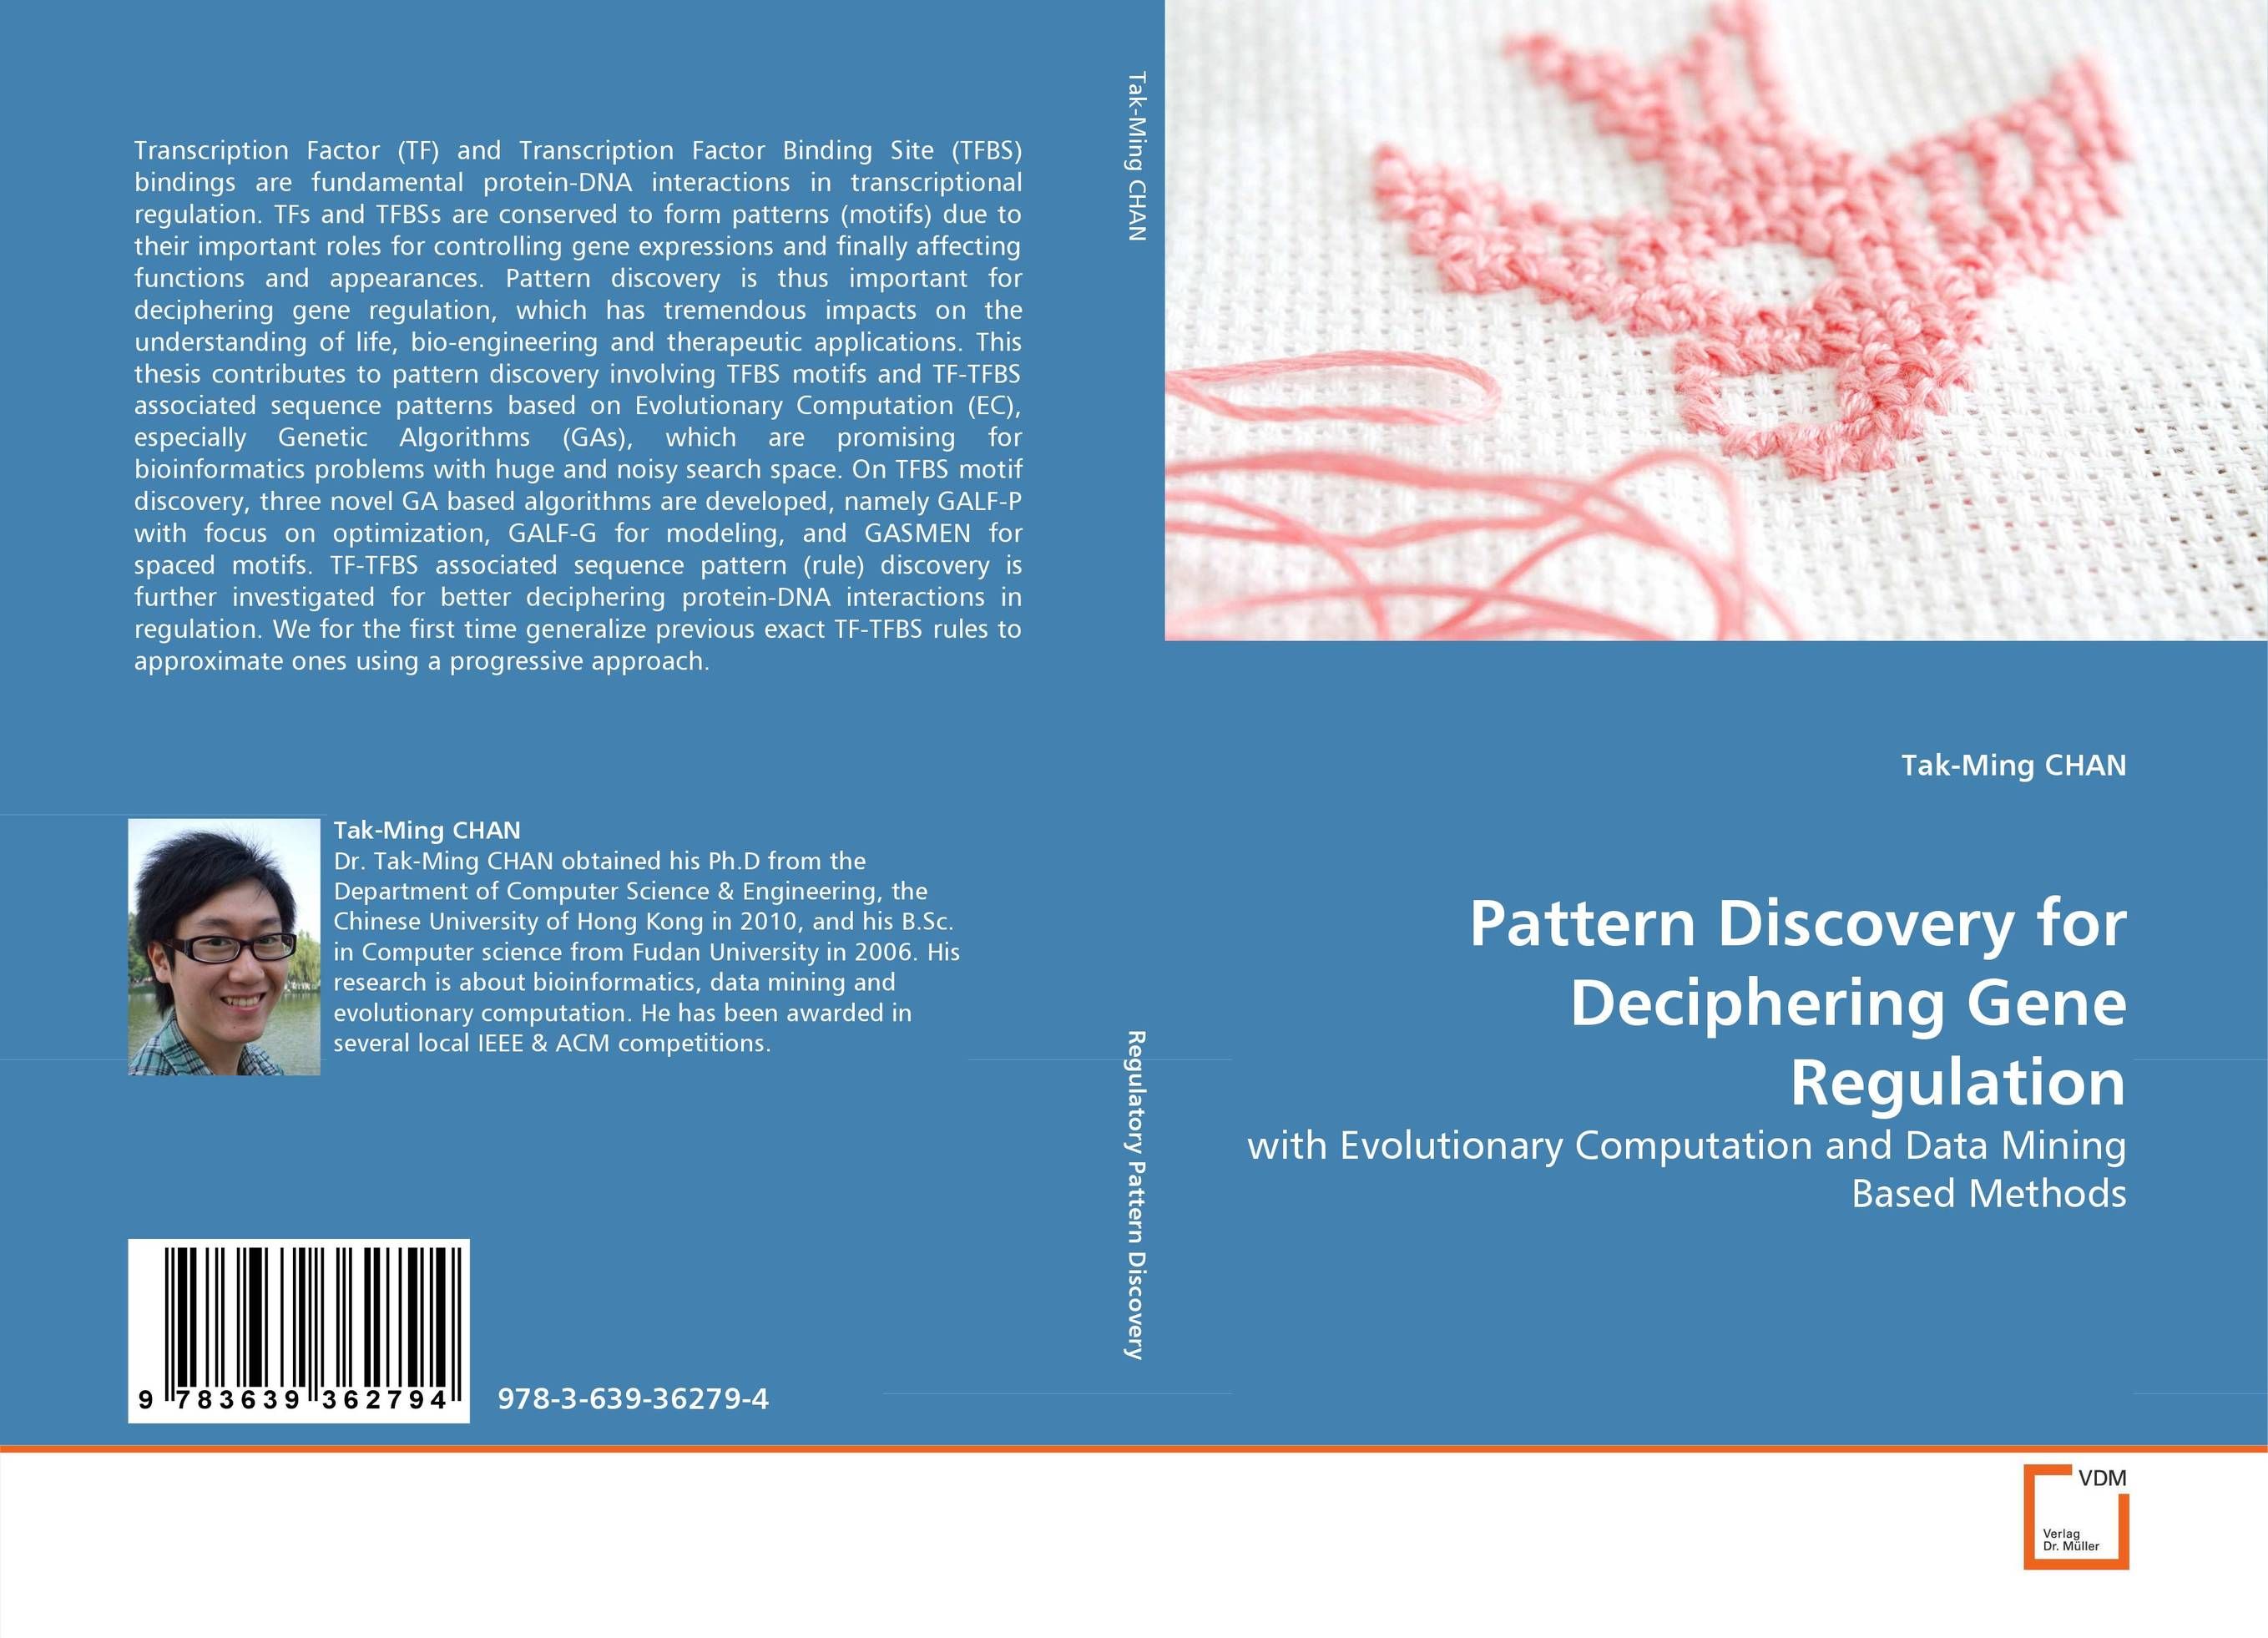 Pattern Discovery for Deciphering Gene Regulation parallel algorithms for free and associative commutative unification